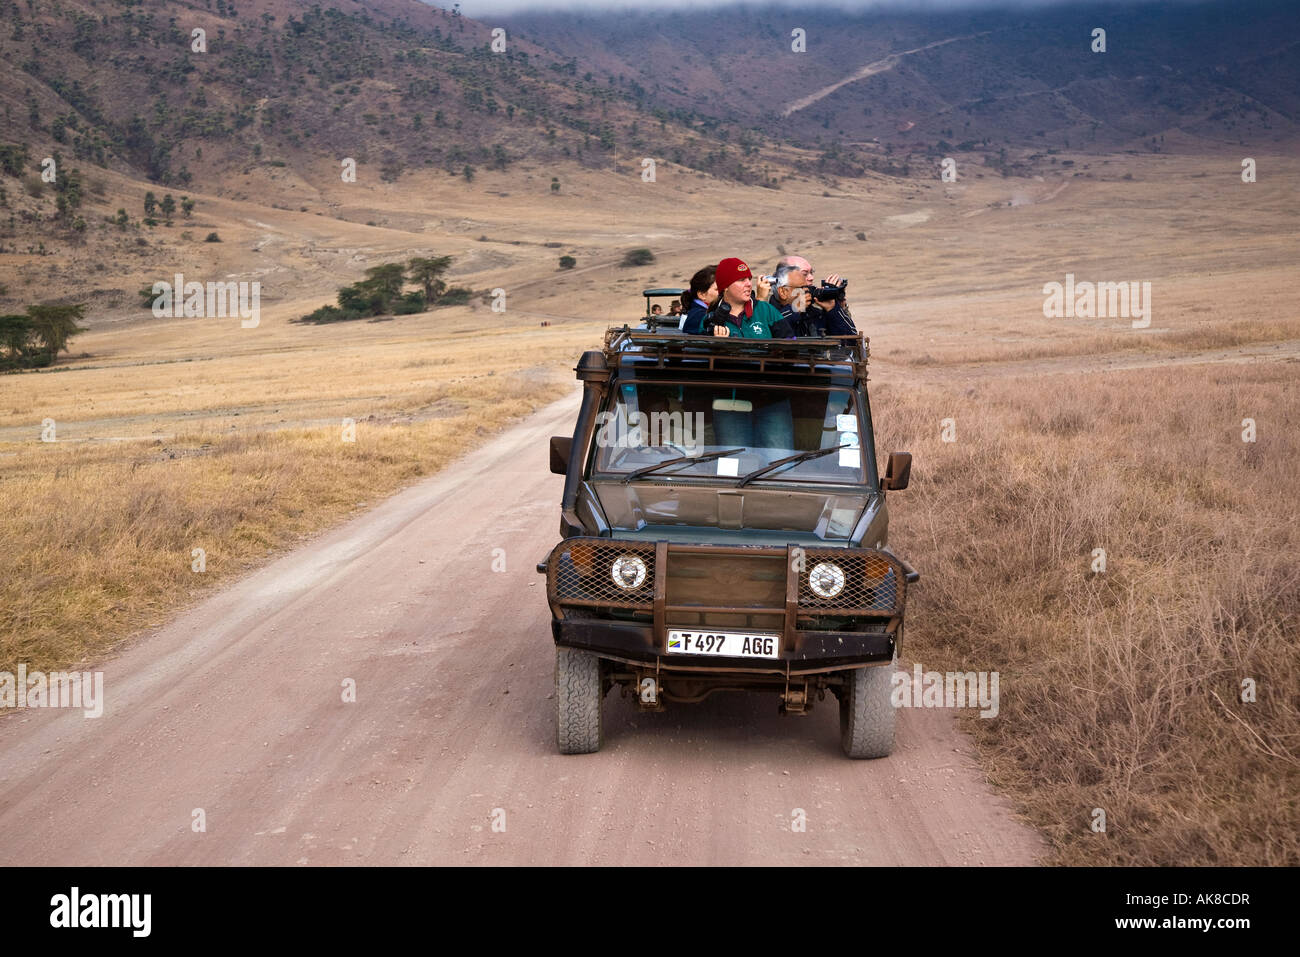 A group of tourists on an early morning Game drive in the Ngorongoro Crater, Tanzania, East Africa. 2007 - Stock Image